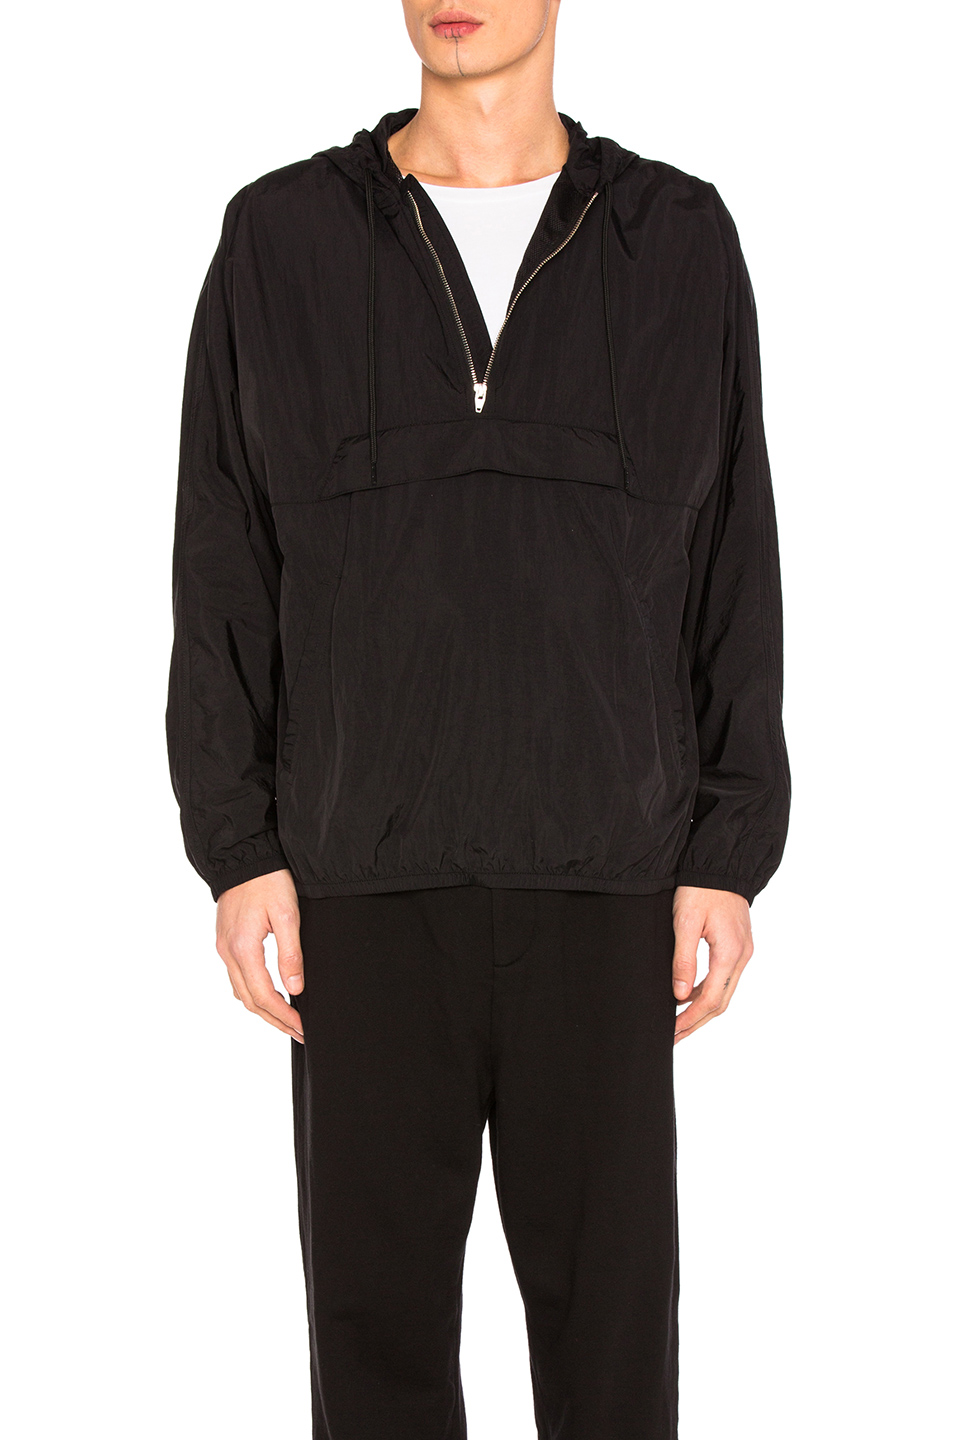 Alexander Wang Beach Anorak in Black